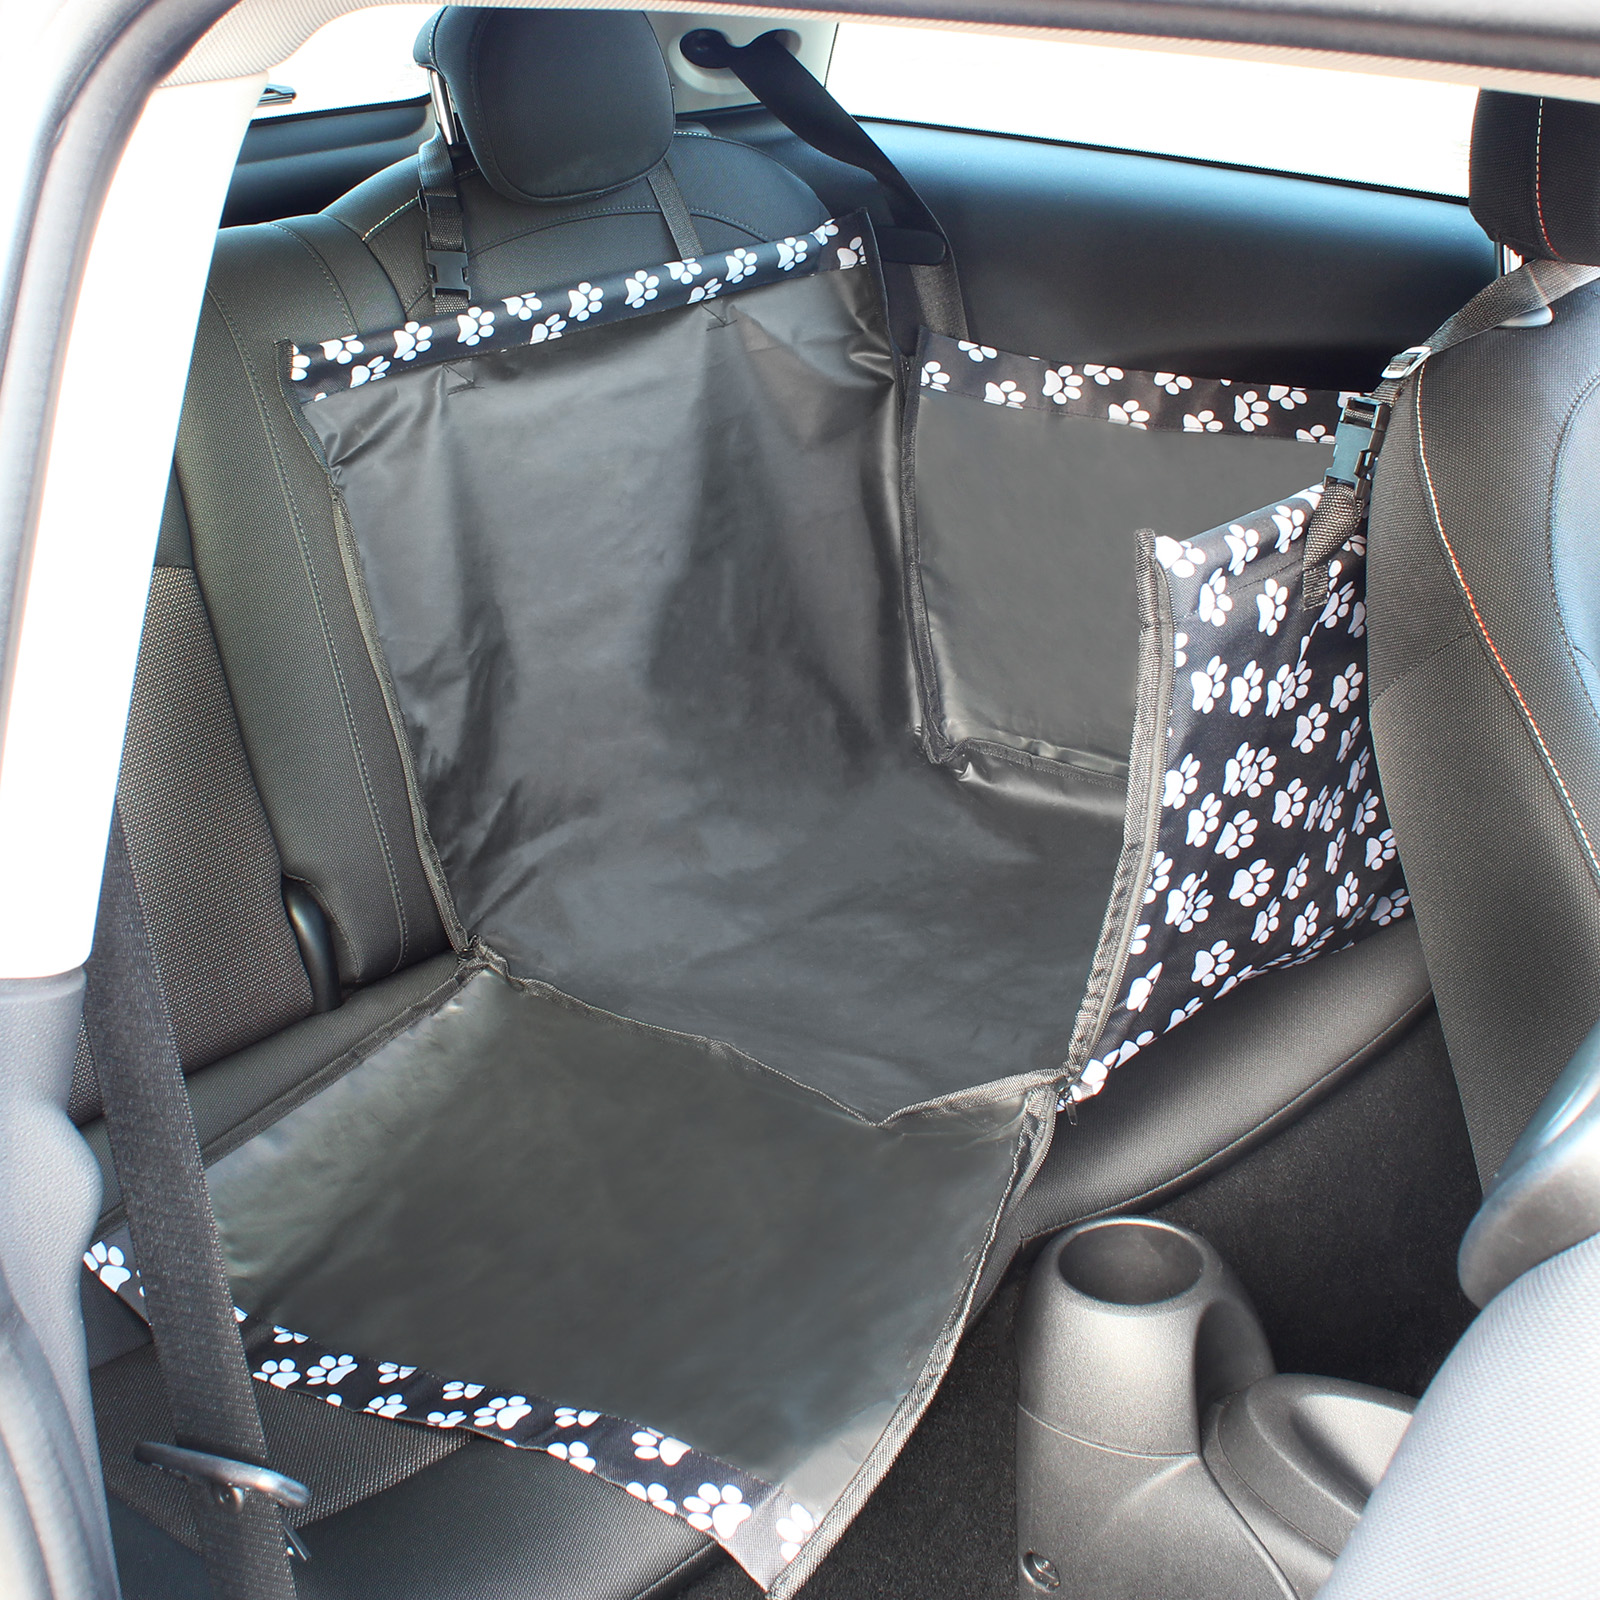 me my small rear waterproof car seat liner protector hammock pet dog cover mat ebay. Black Bedroom Furniture Sets. Home Design Ideas